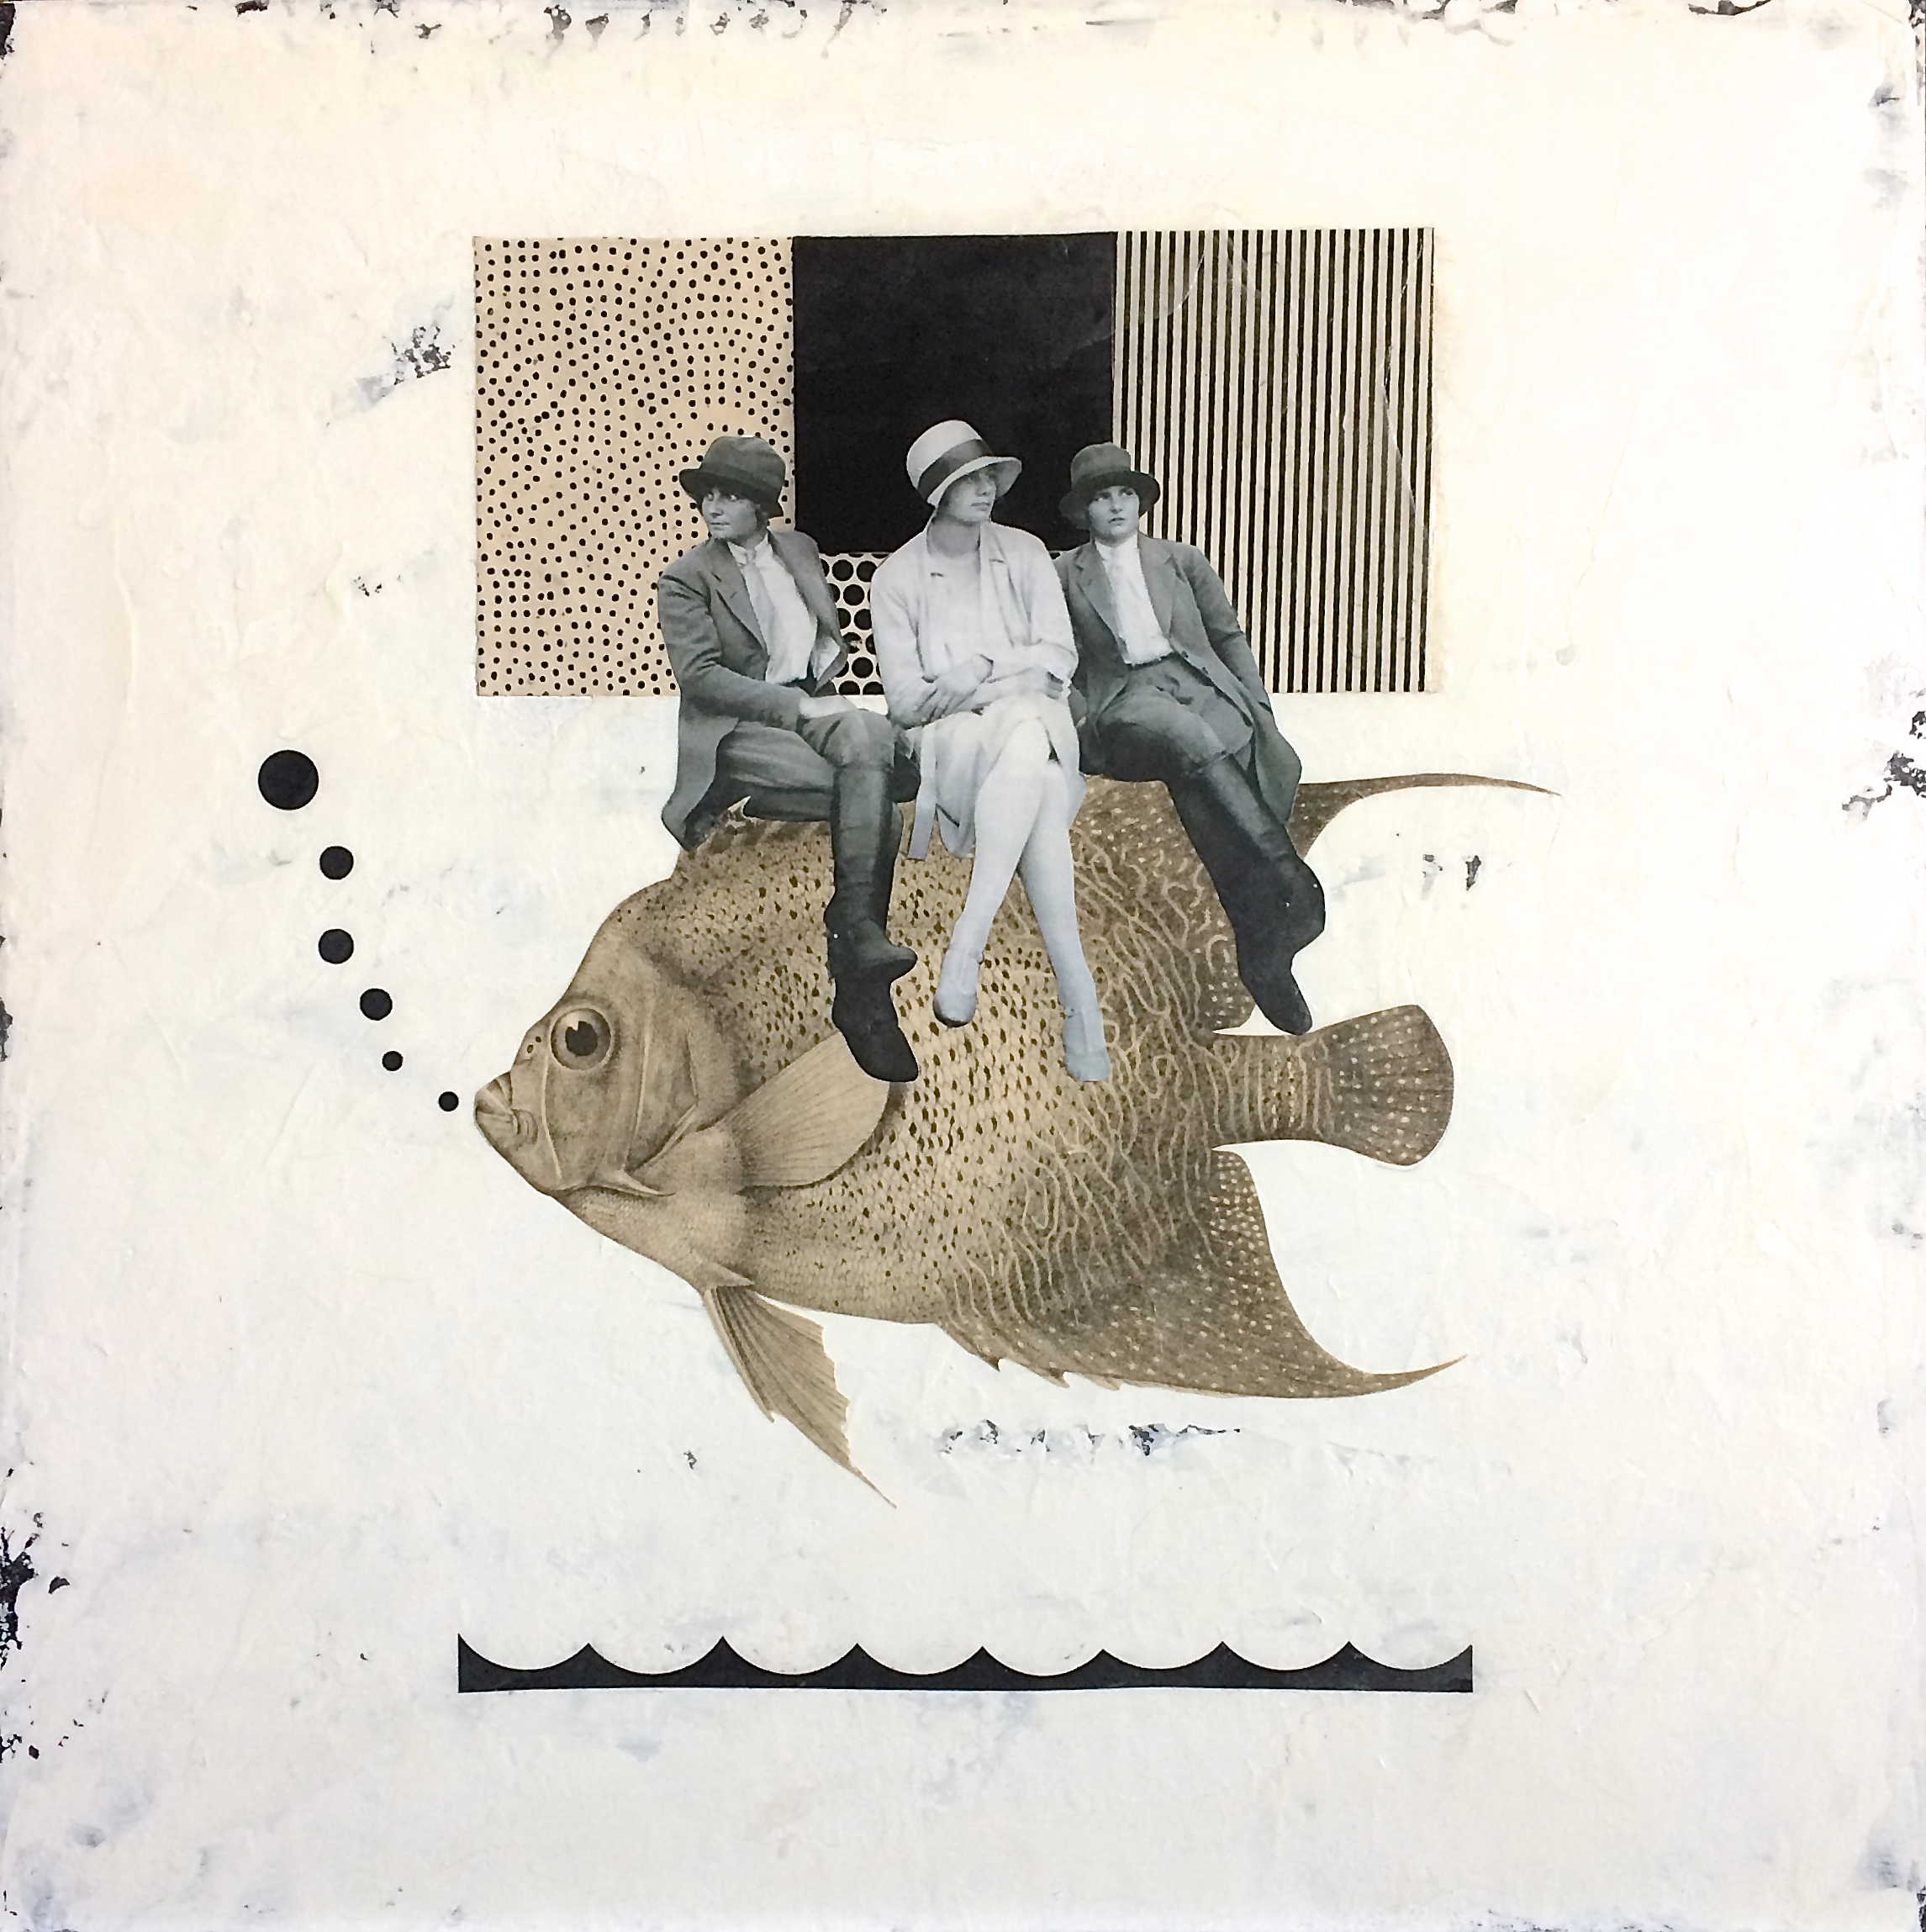 Three Dames on a Fish: Mixed media on wood panel